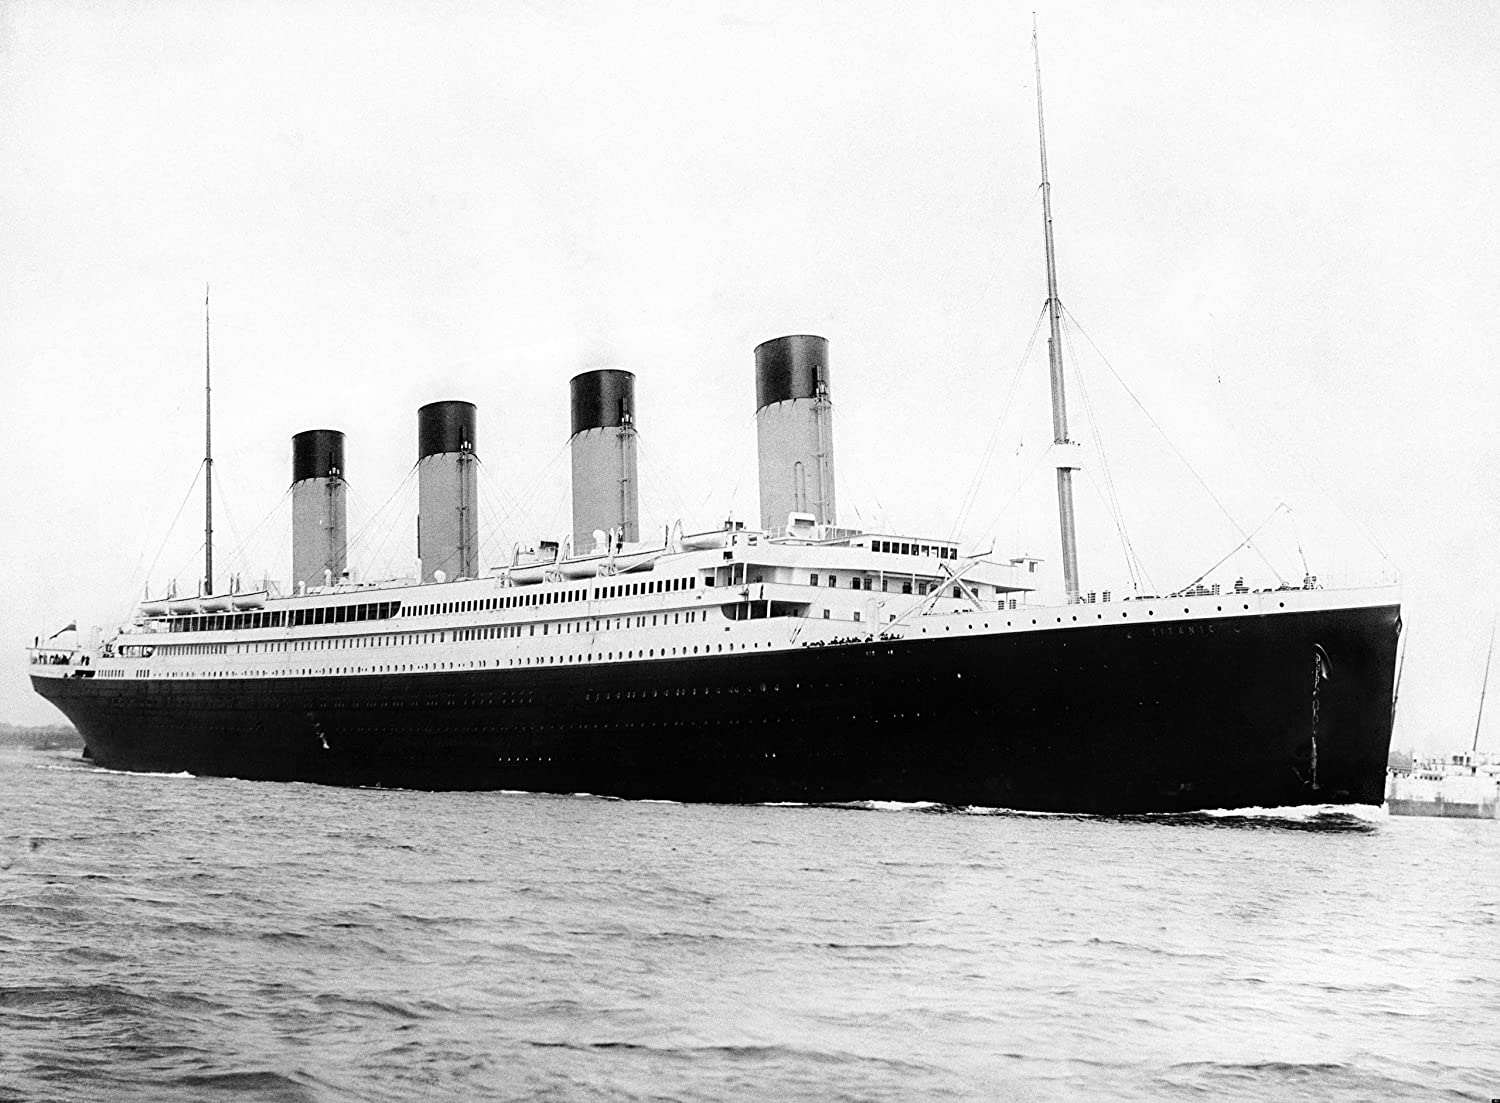 RMS Titanic Departing Southampton April 10 1912 Price reduction Hist Photo Great Limited price sale